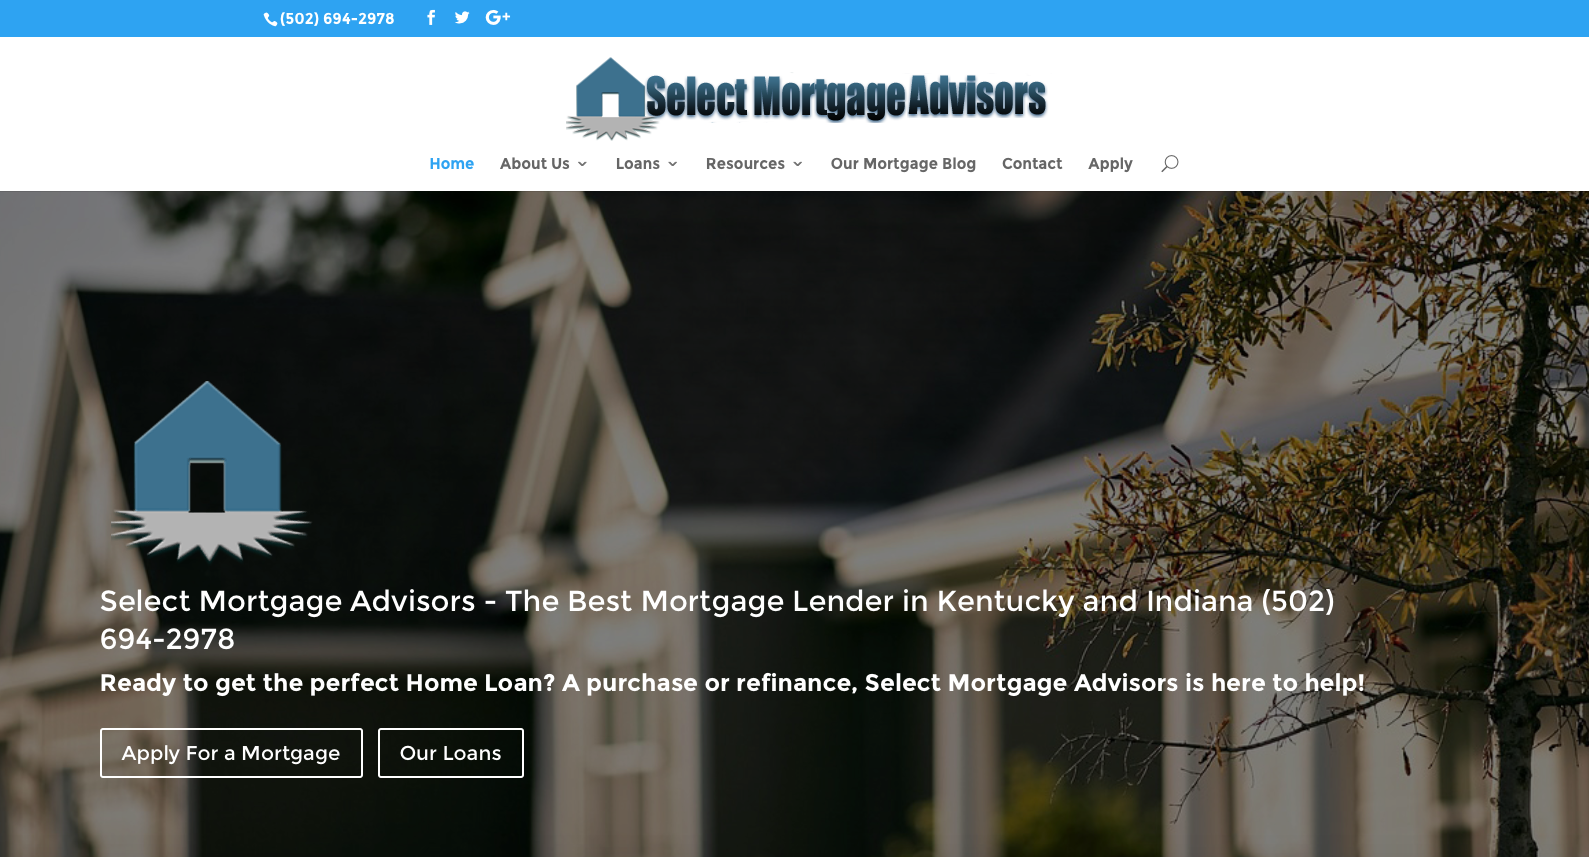 select-mortgage-advisors-louisville-ky